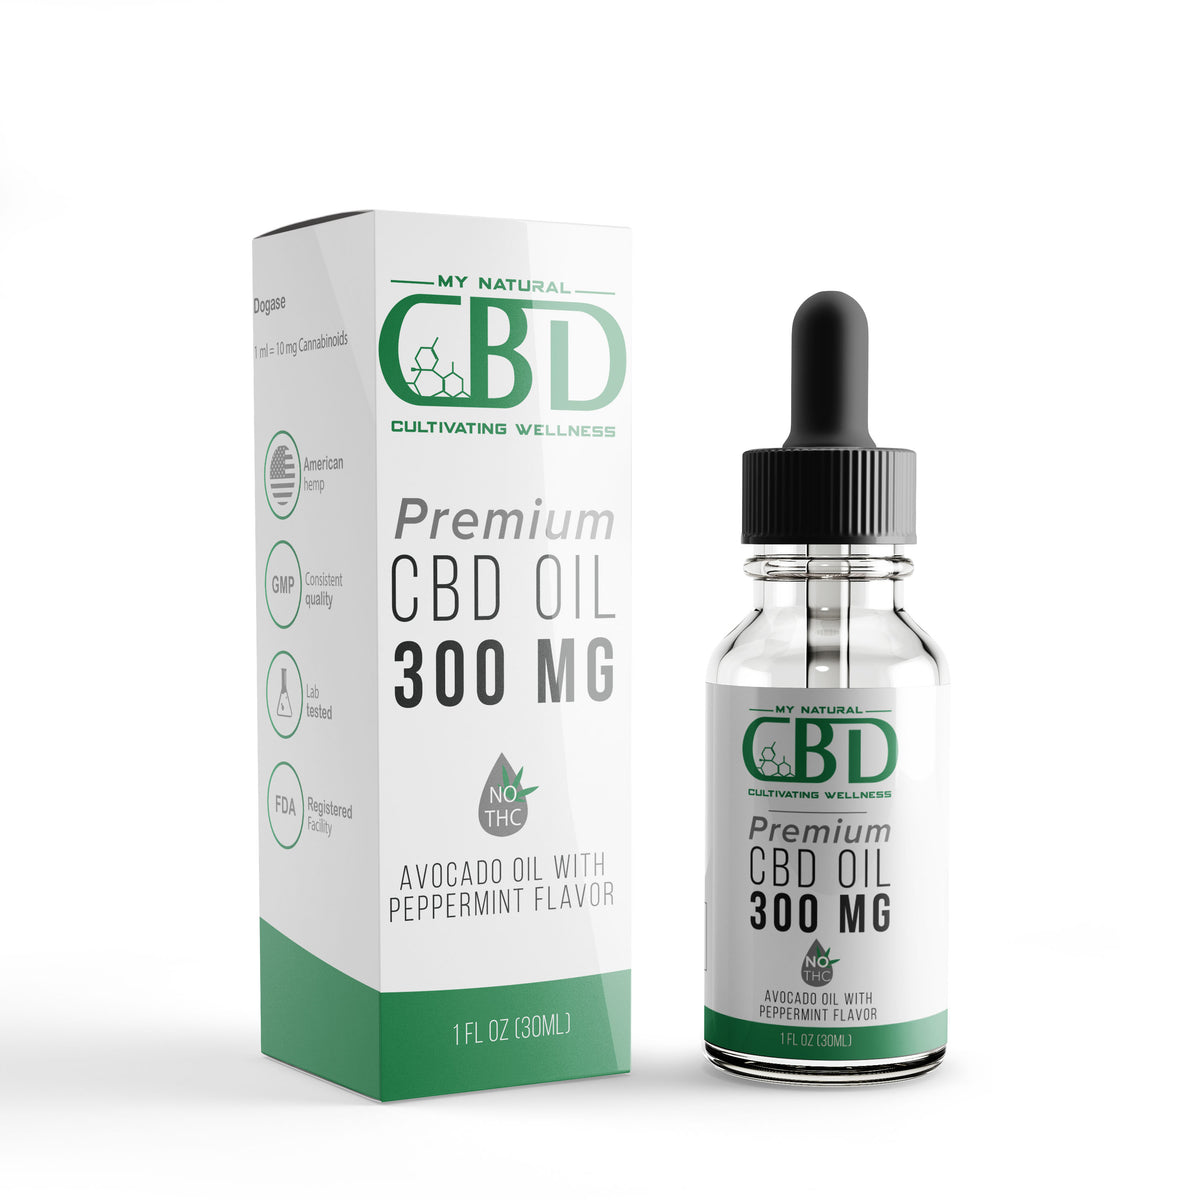 300 MG Isolate CBD Tincture peppermint flavored with avocado oil